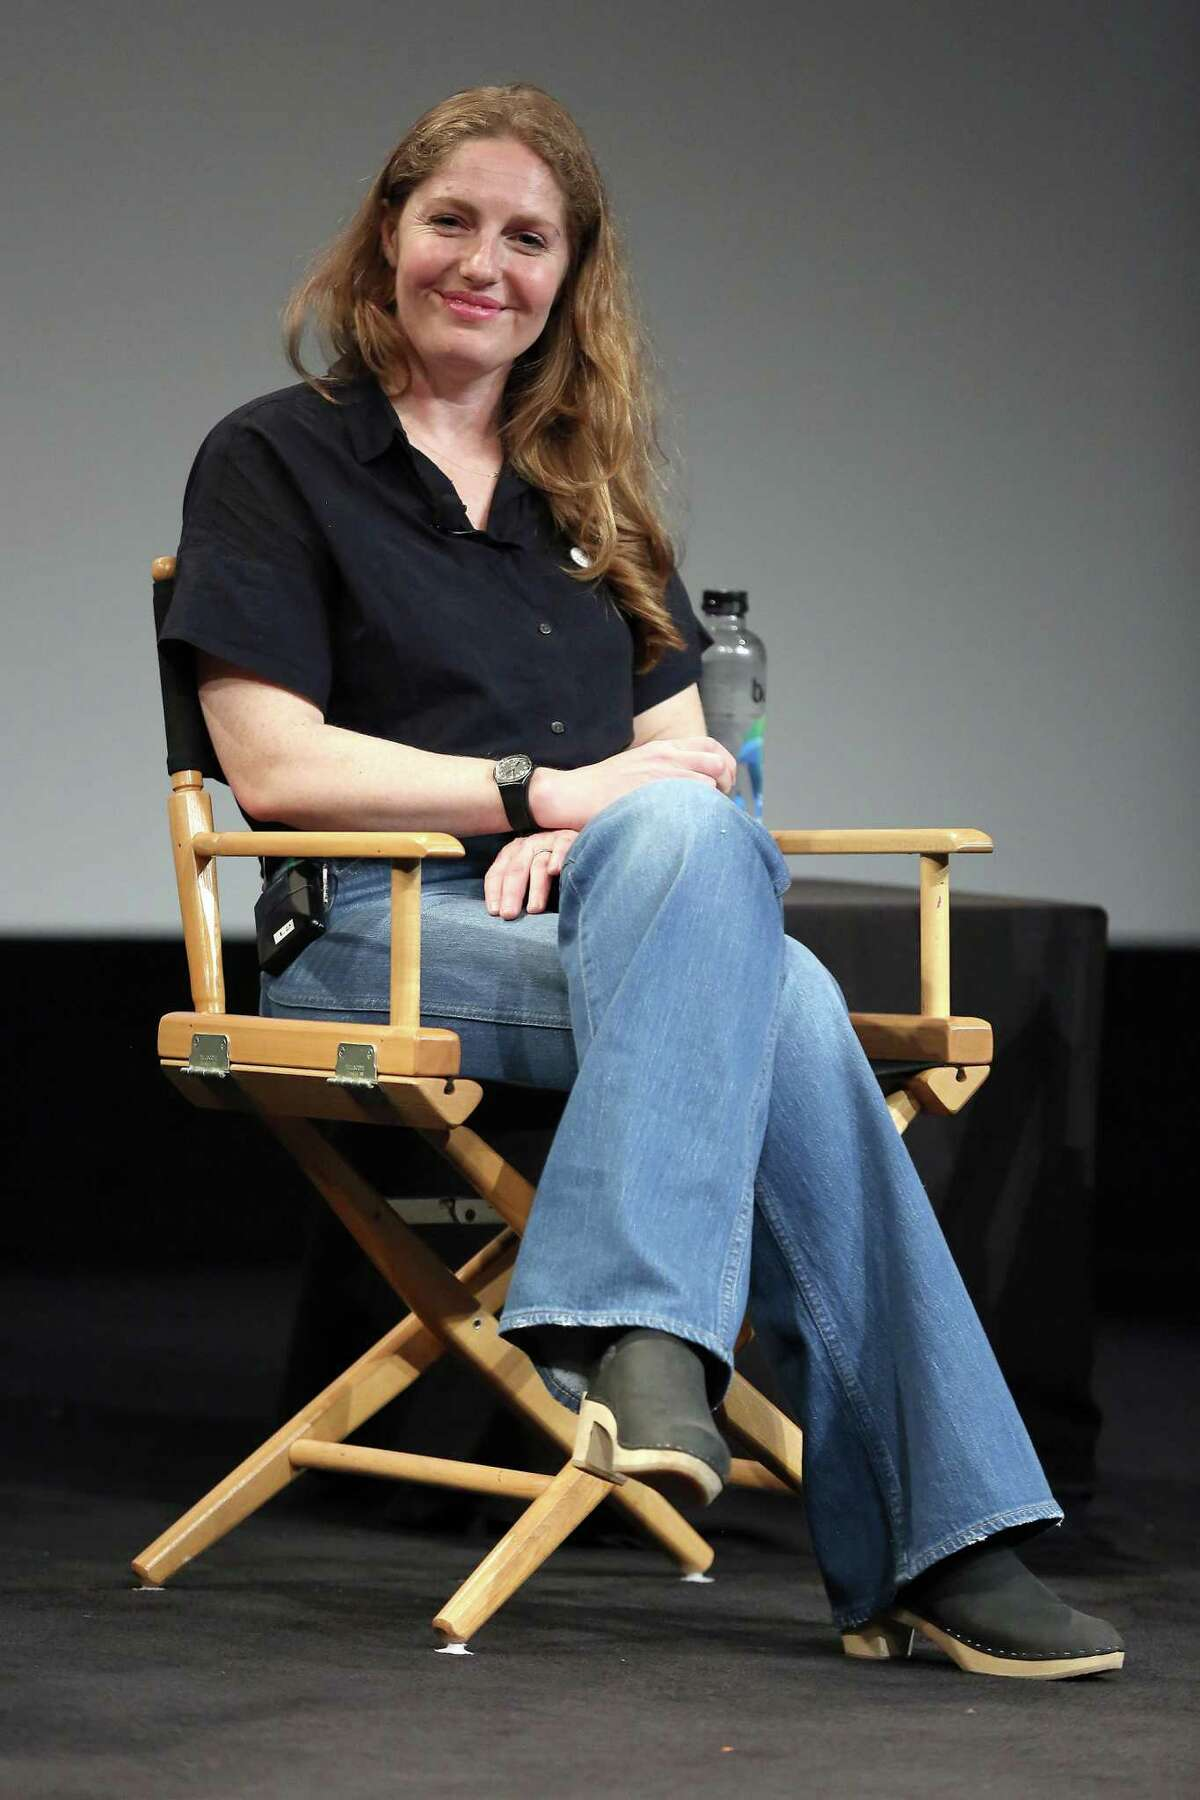 """Chef and author Abra Berens speaks on stage at """"Fierce: Stories Of Women Who Changed The World"""" during the 2019 Tribeca Film Festival in May in New York City."""